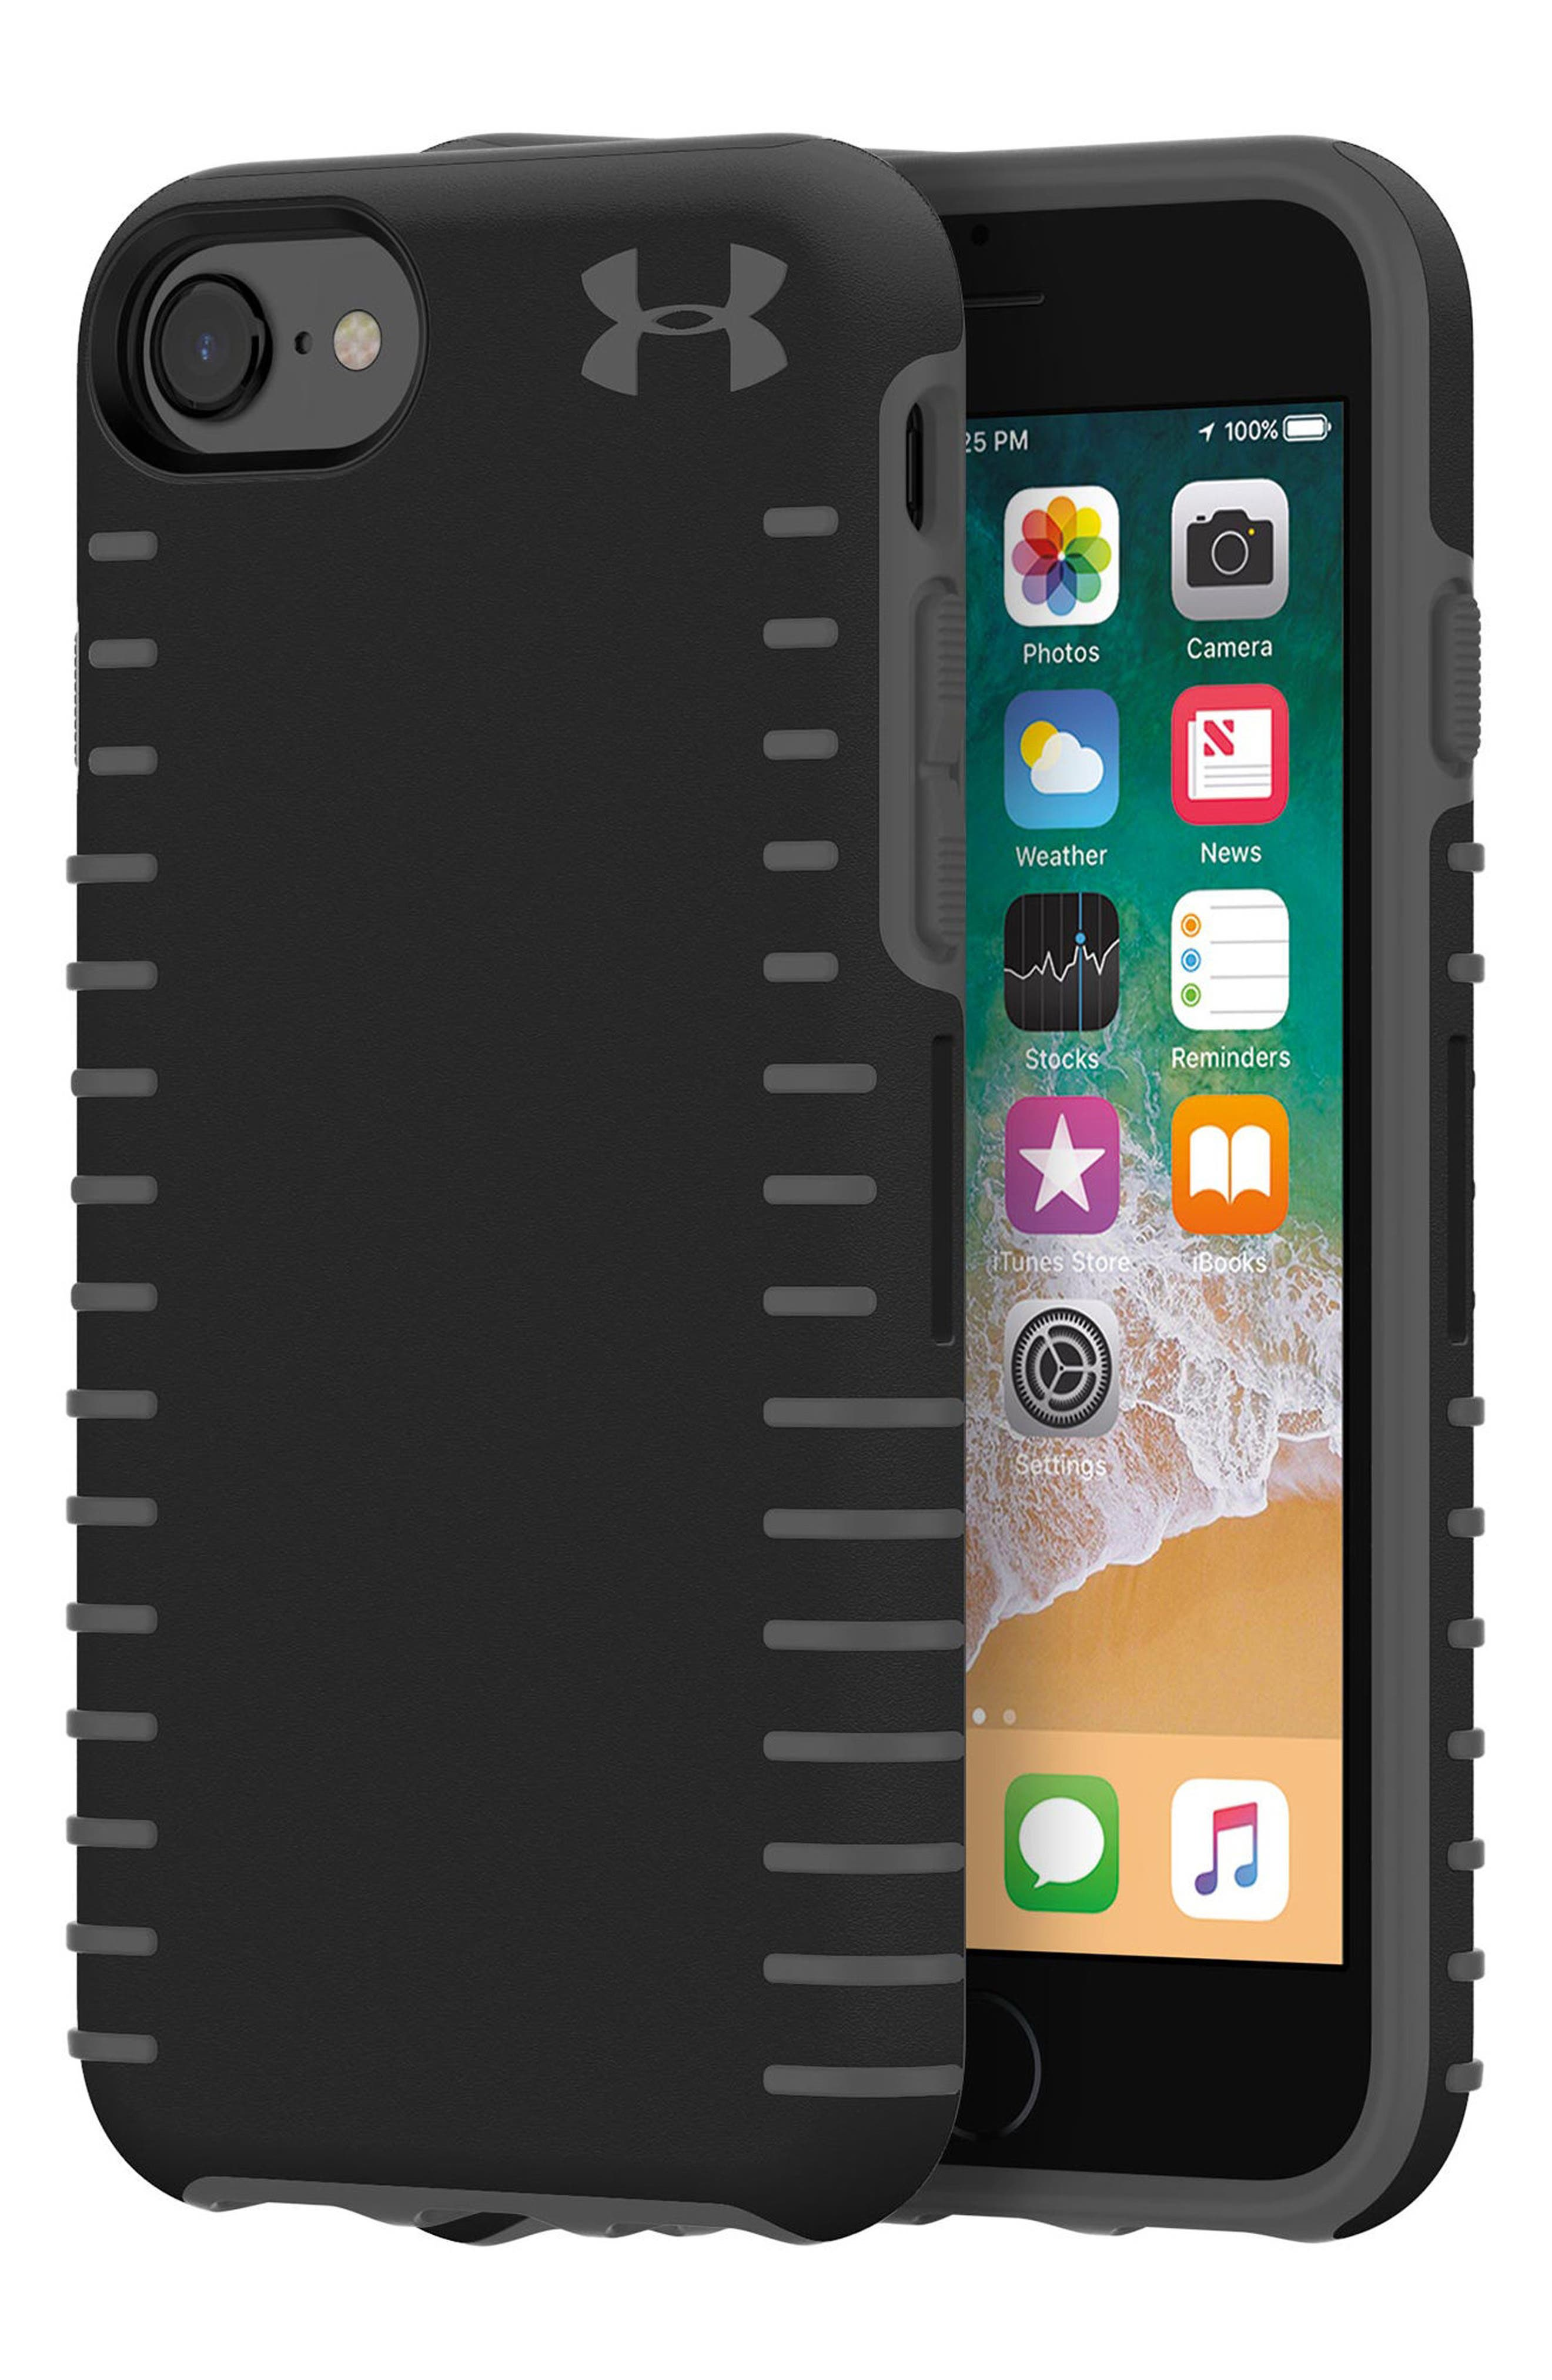 Protect Grip iPhone 6/6s/7/8 Case,                             Alternate thumbnail 4, color,                             Black/ Graphite